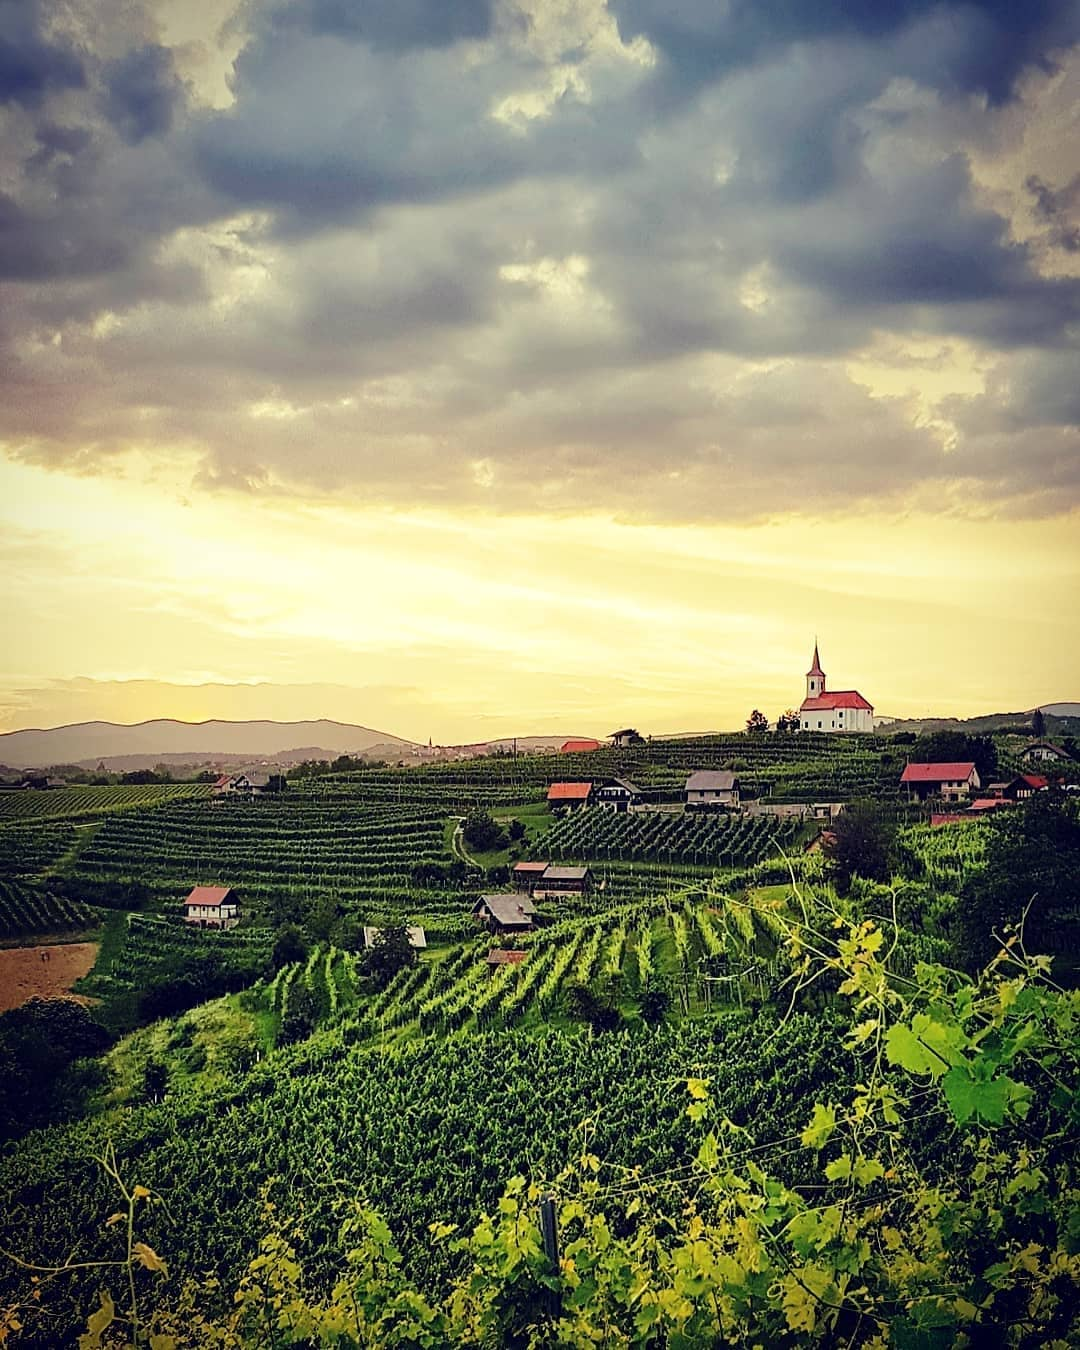 Bela Krajina is one of the wine growing regions in Slovenia where landscape is defined by endless vineyards.  Thanks @sep_i for sharing your photo with #ifeelsLOVEnia.